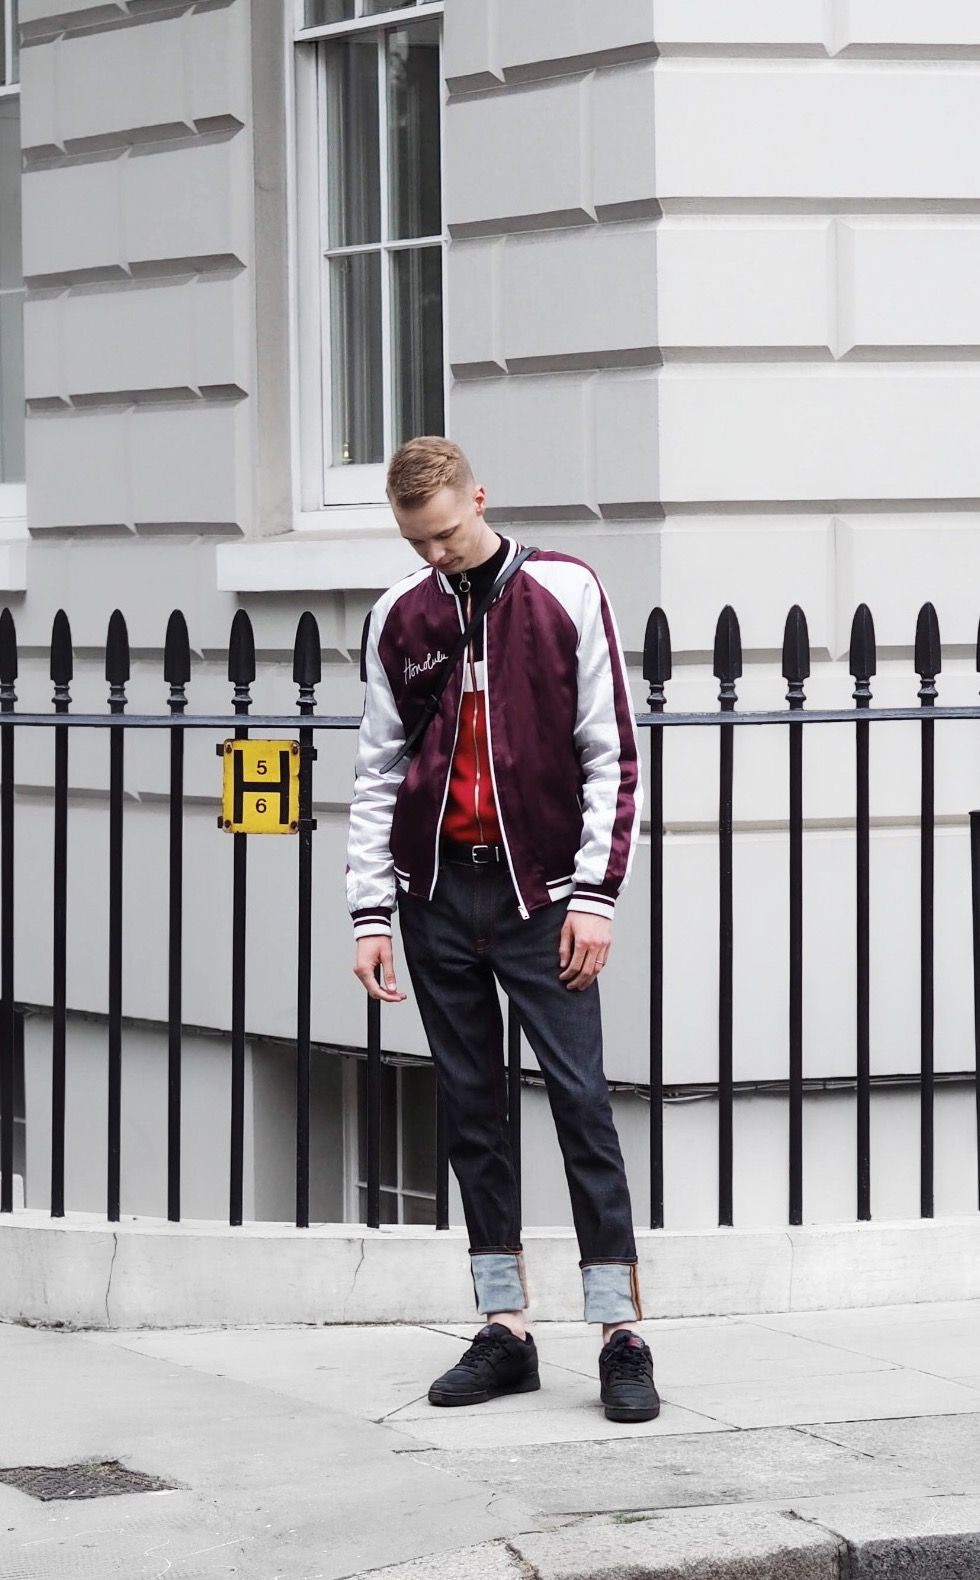 Streets of Belgravia. (London, menswear, men, style, male, fashion, red, burgundy, street, silver, white, satin, jacket, jeans, rolled up, reebok, trainers, sneakers, denim, spring, summer)